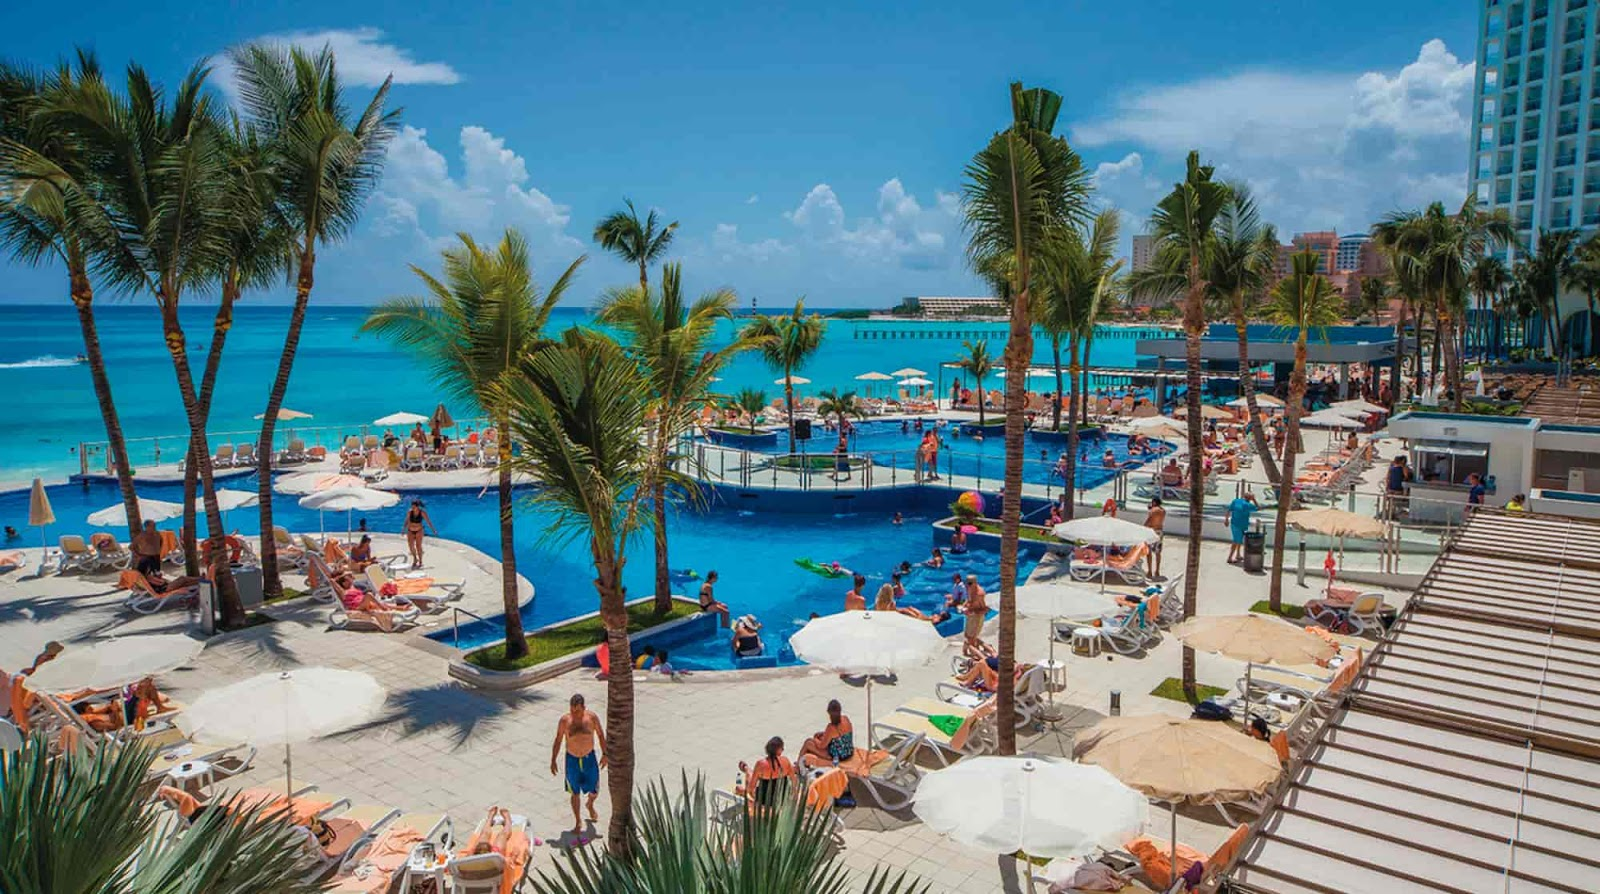 Cancun Vacation After Christmas 2020 Cancun Vacation Packages |Travel Deals 2020 | Package & Save up to